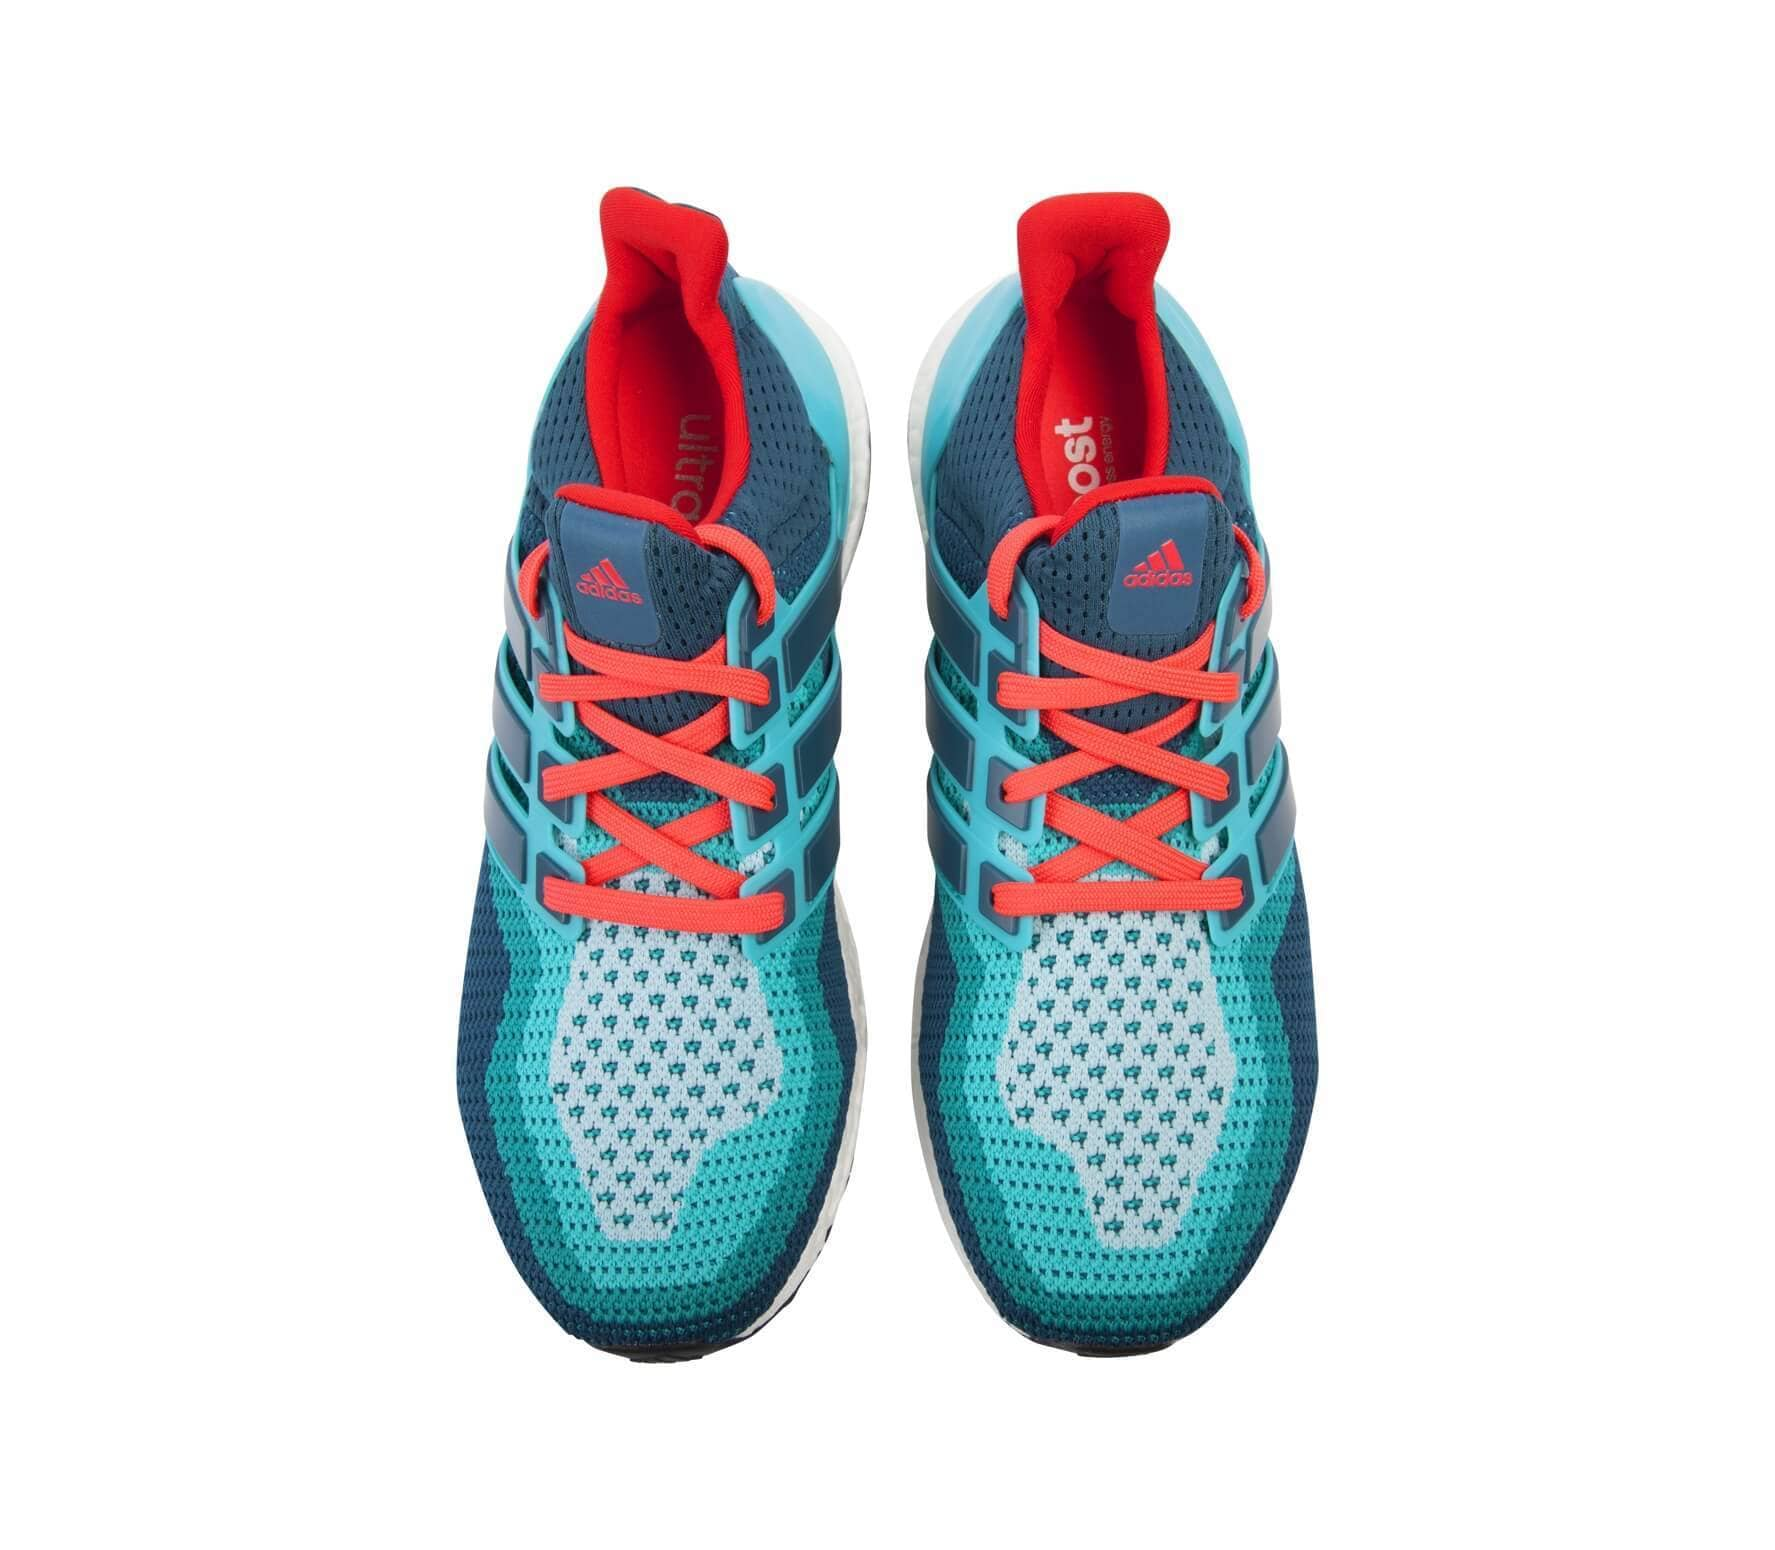 huge discount hot products coupon code Adidas - Ultra Boost men's running shoes (turquoise/red)